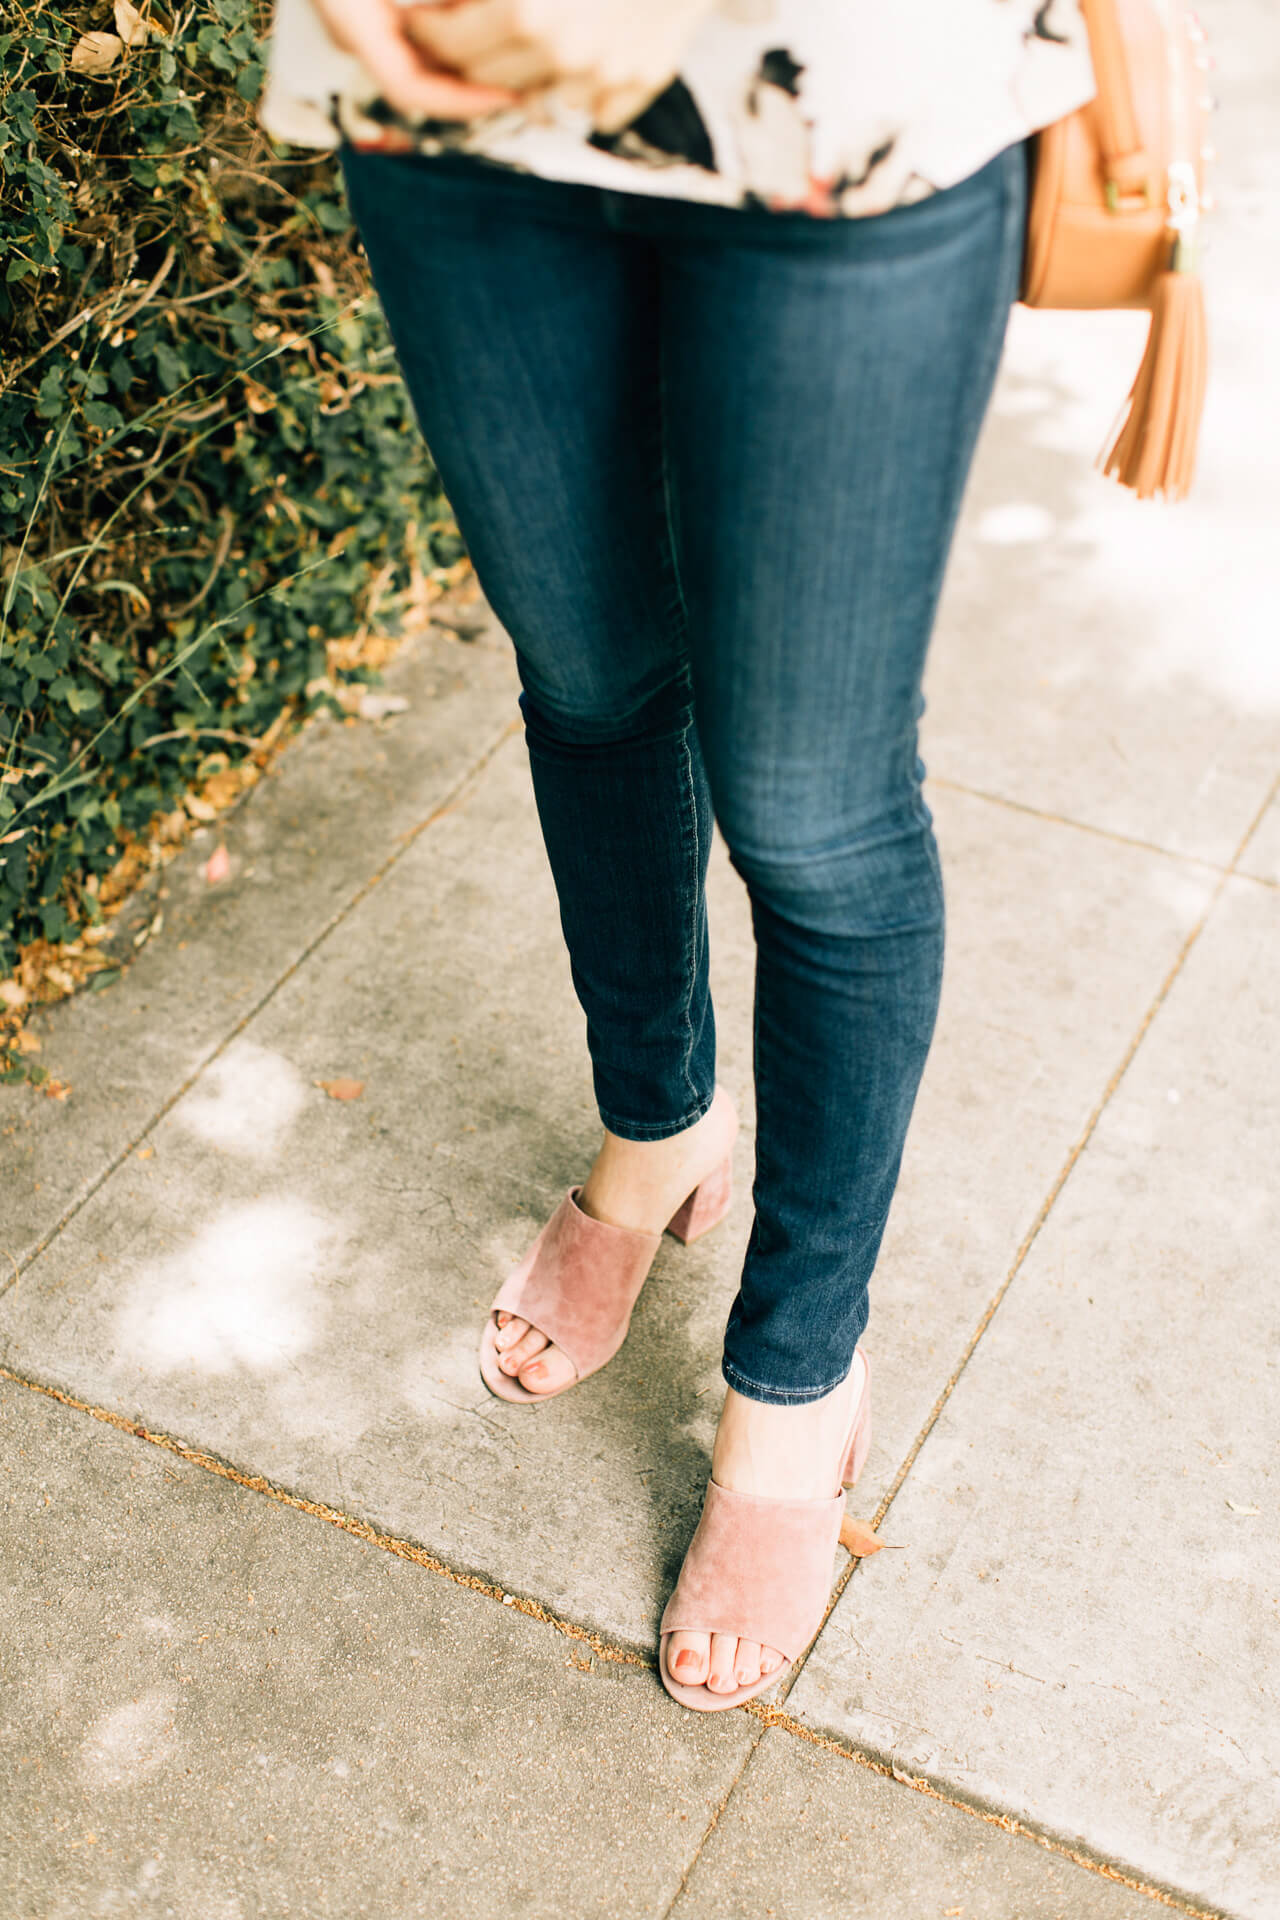 the shoe of the moment: suede mules! Love this pair with skinny jeans